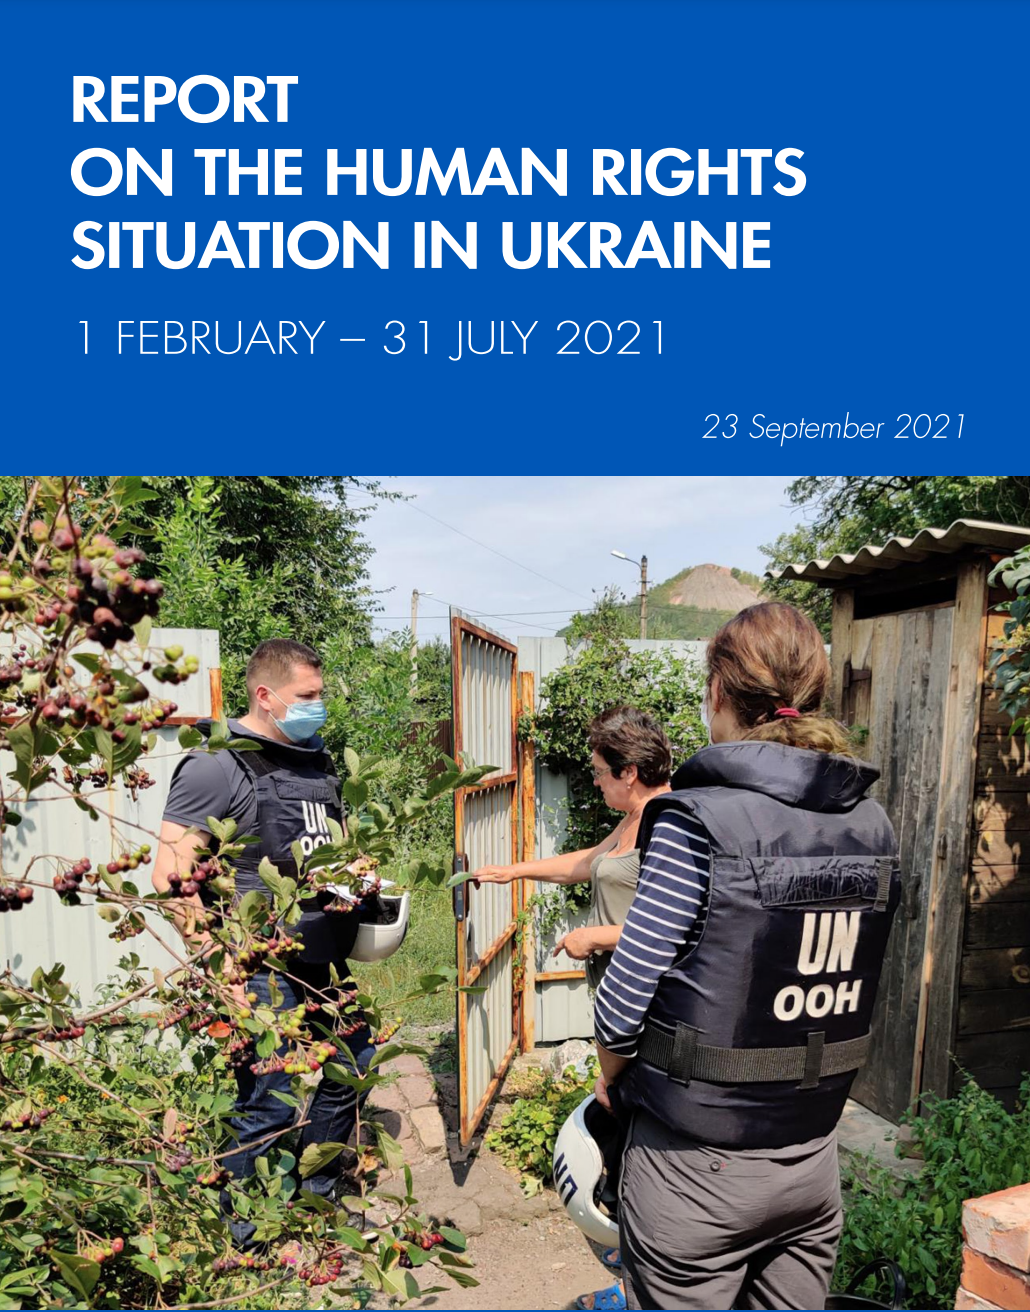 The 32nd report by OHCHR on the human rights situation in Ukraine covers the period from 1 February to 31 July 2021. It is based on the work of the UN Human Rights Monitoring Mission in Ukraine.